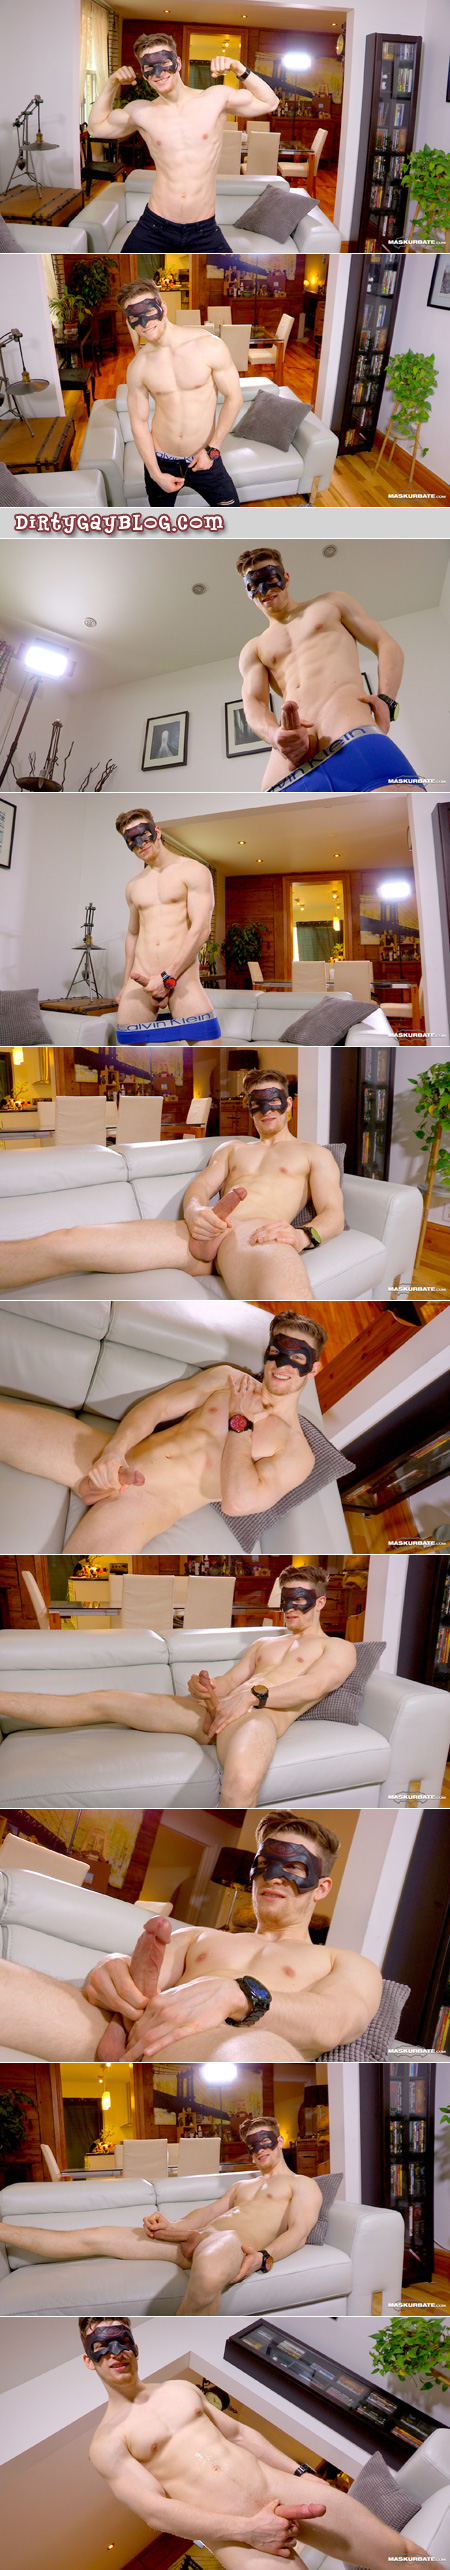 Smooth muscle stud in a mask stripping out of his underwear and jacking his long dick onto his abs.